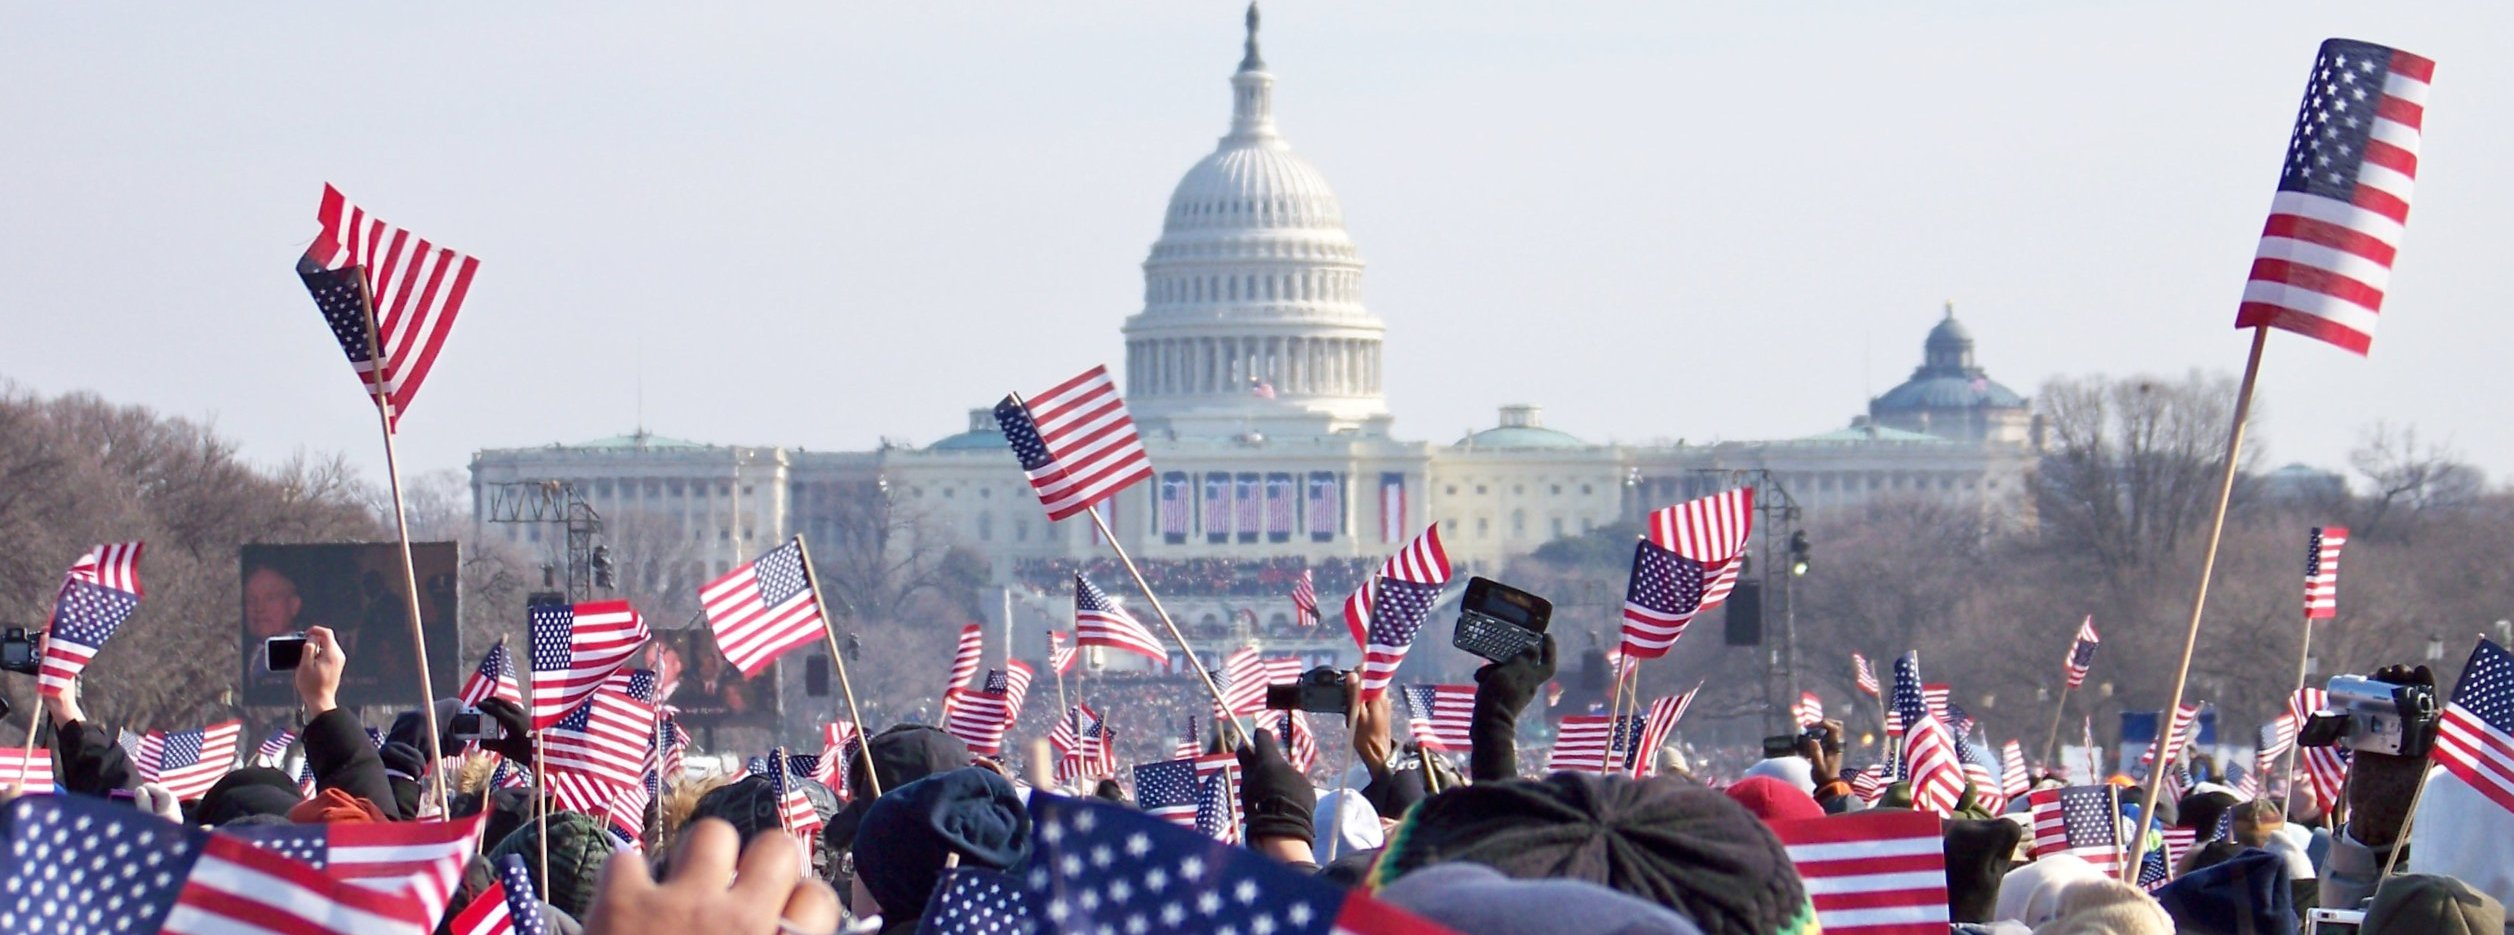 inauguration flags.jpg